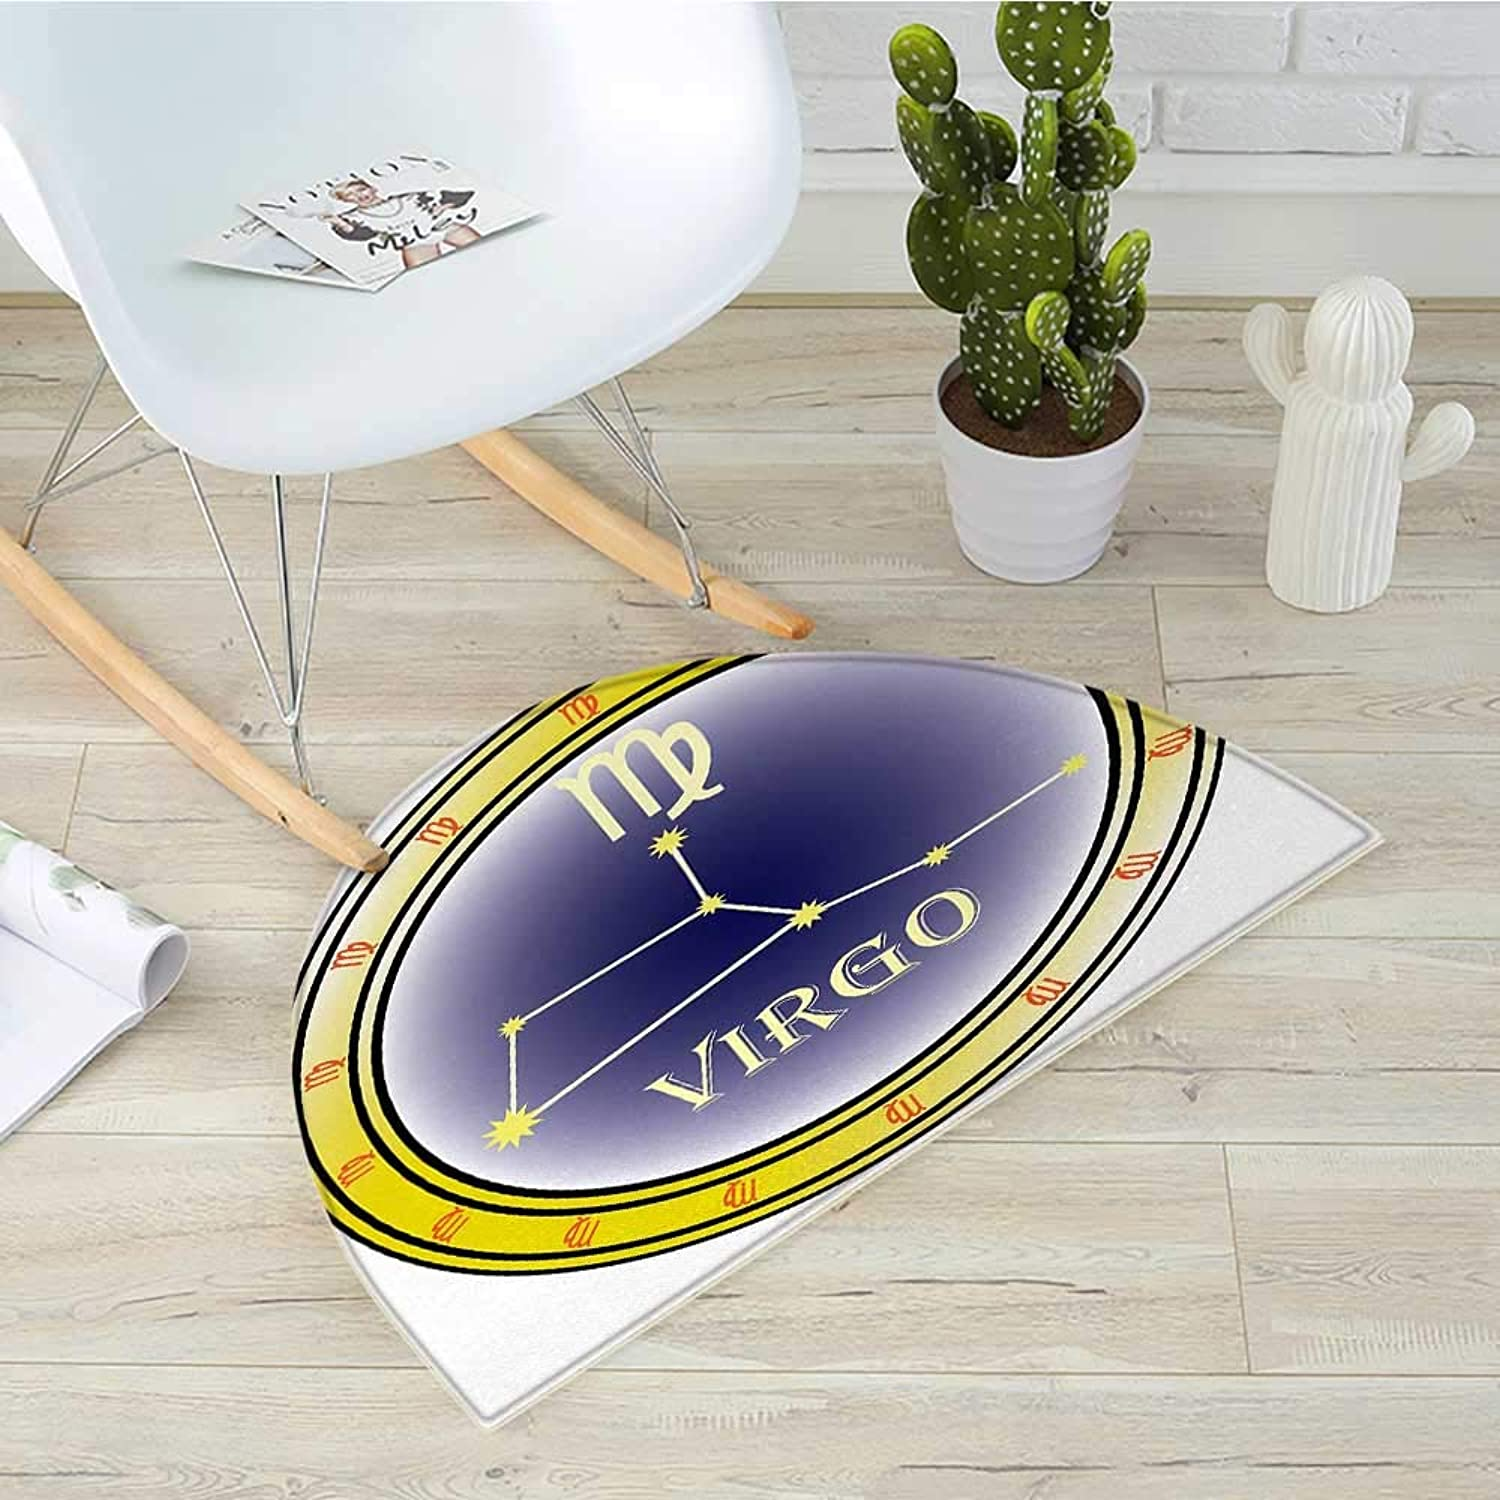 Zodiac Virgo Semicircular CushionHgoldscope Constellation and Sign in a Circle Destiny and Future Entry Door Mat H 39.3  xD 59  Navy bluee Yellow orange